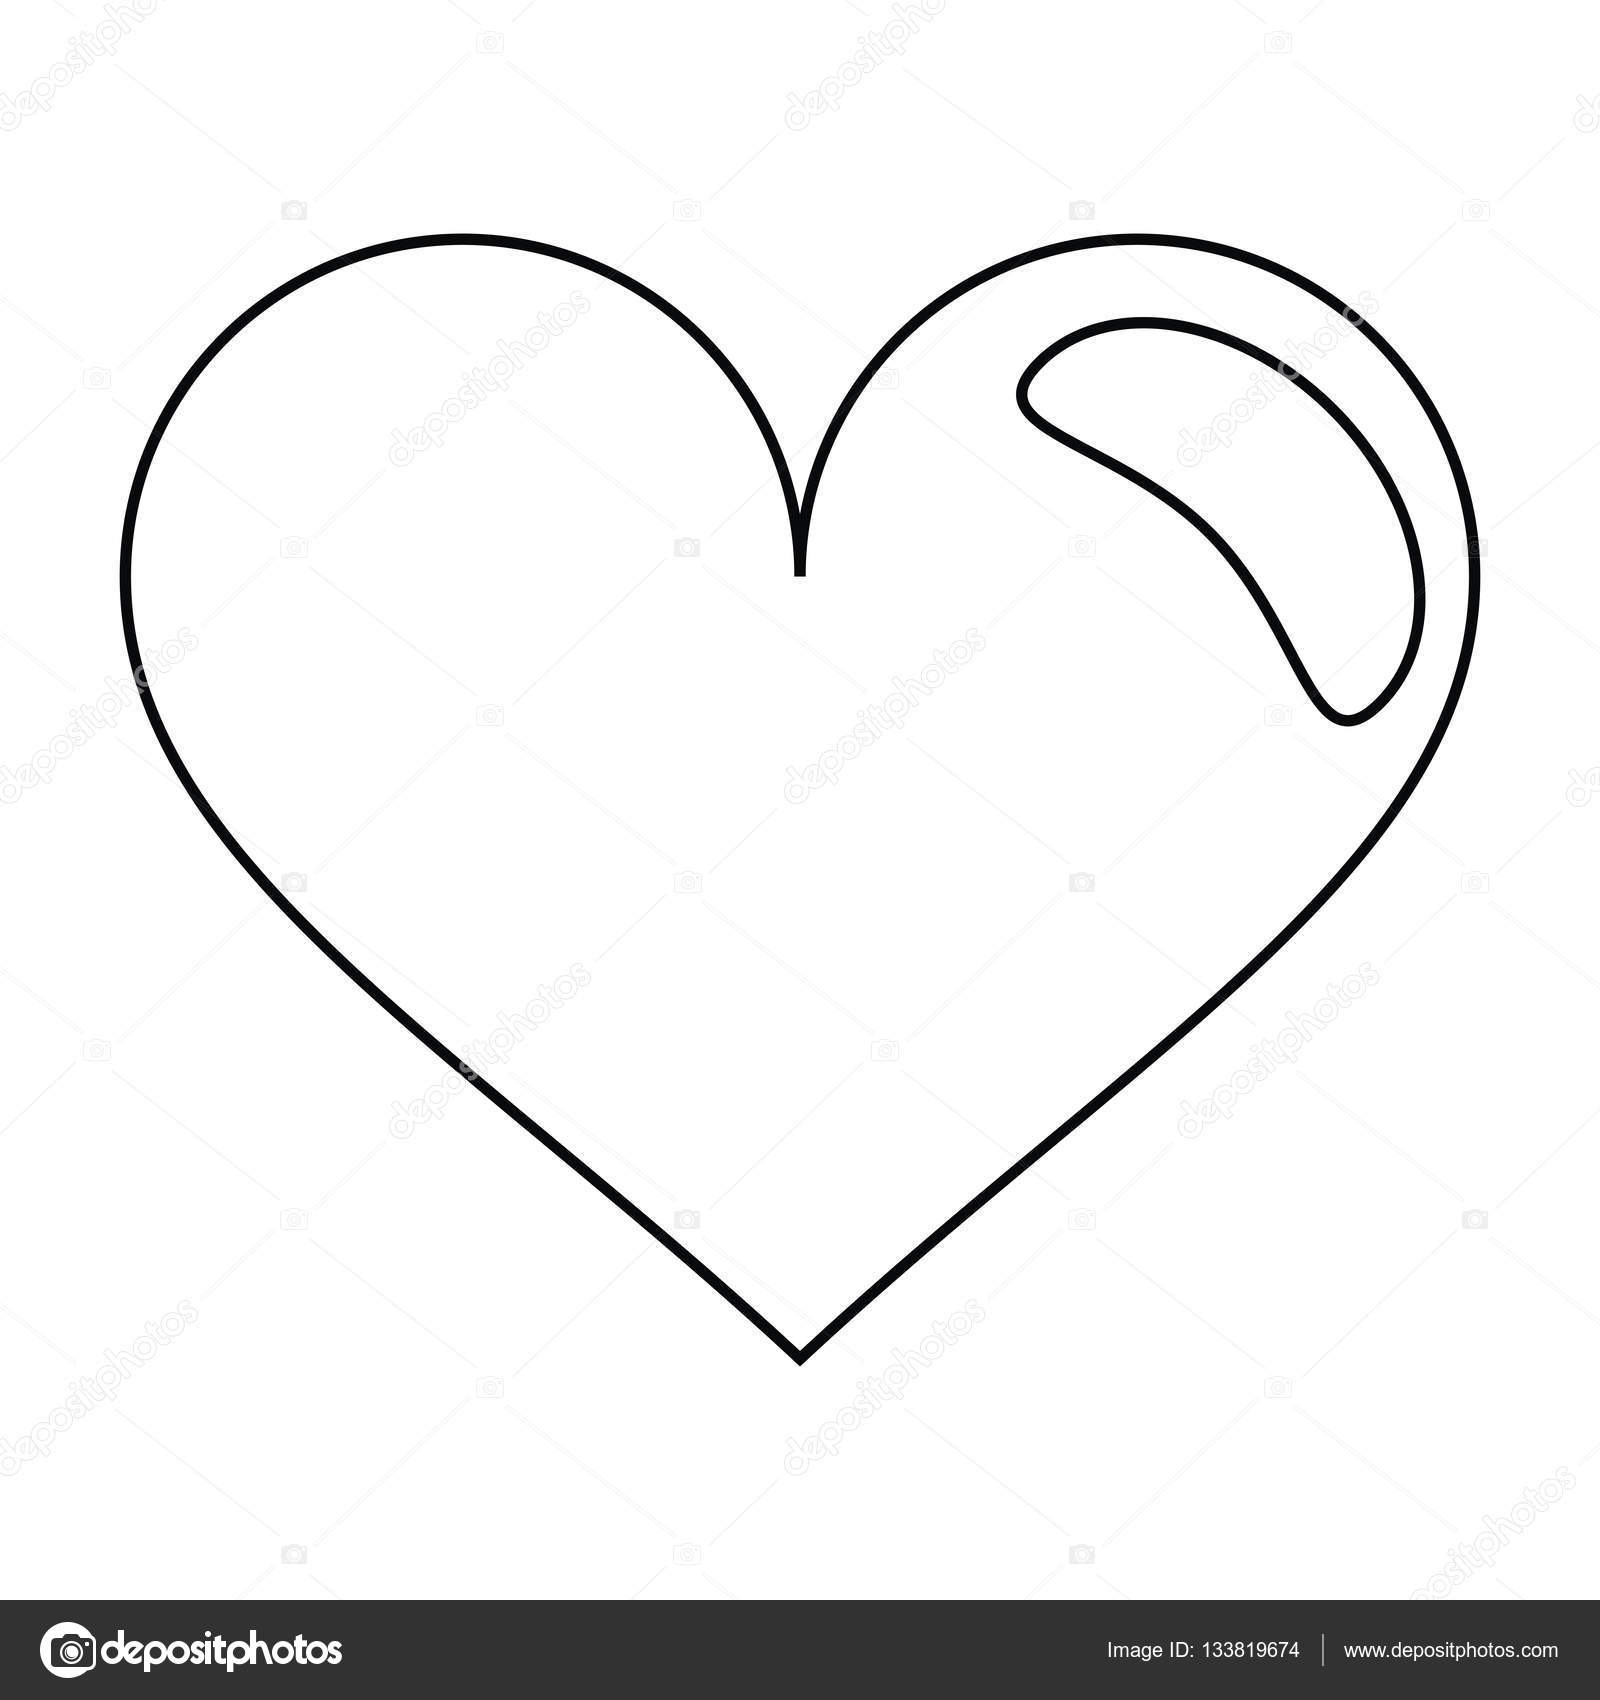 Heart love romantic symbol outline stock vector jemastock heart love romantic symbol outline stock vector buycottarizona Image collections